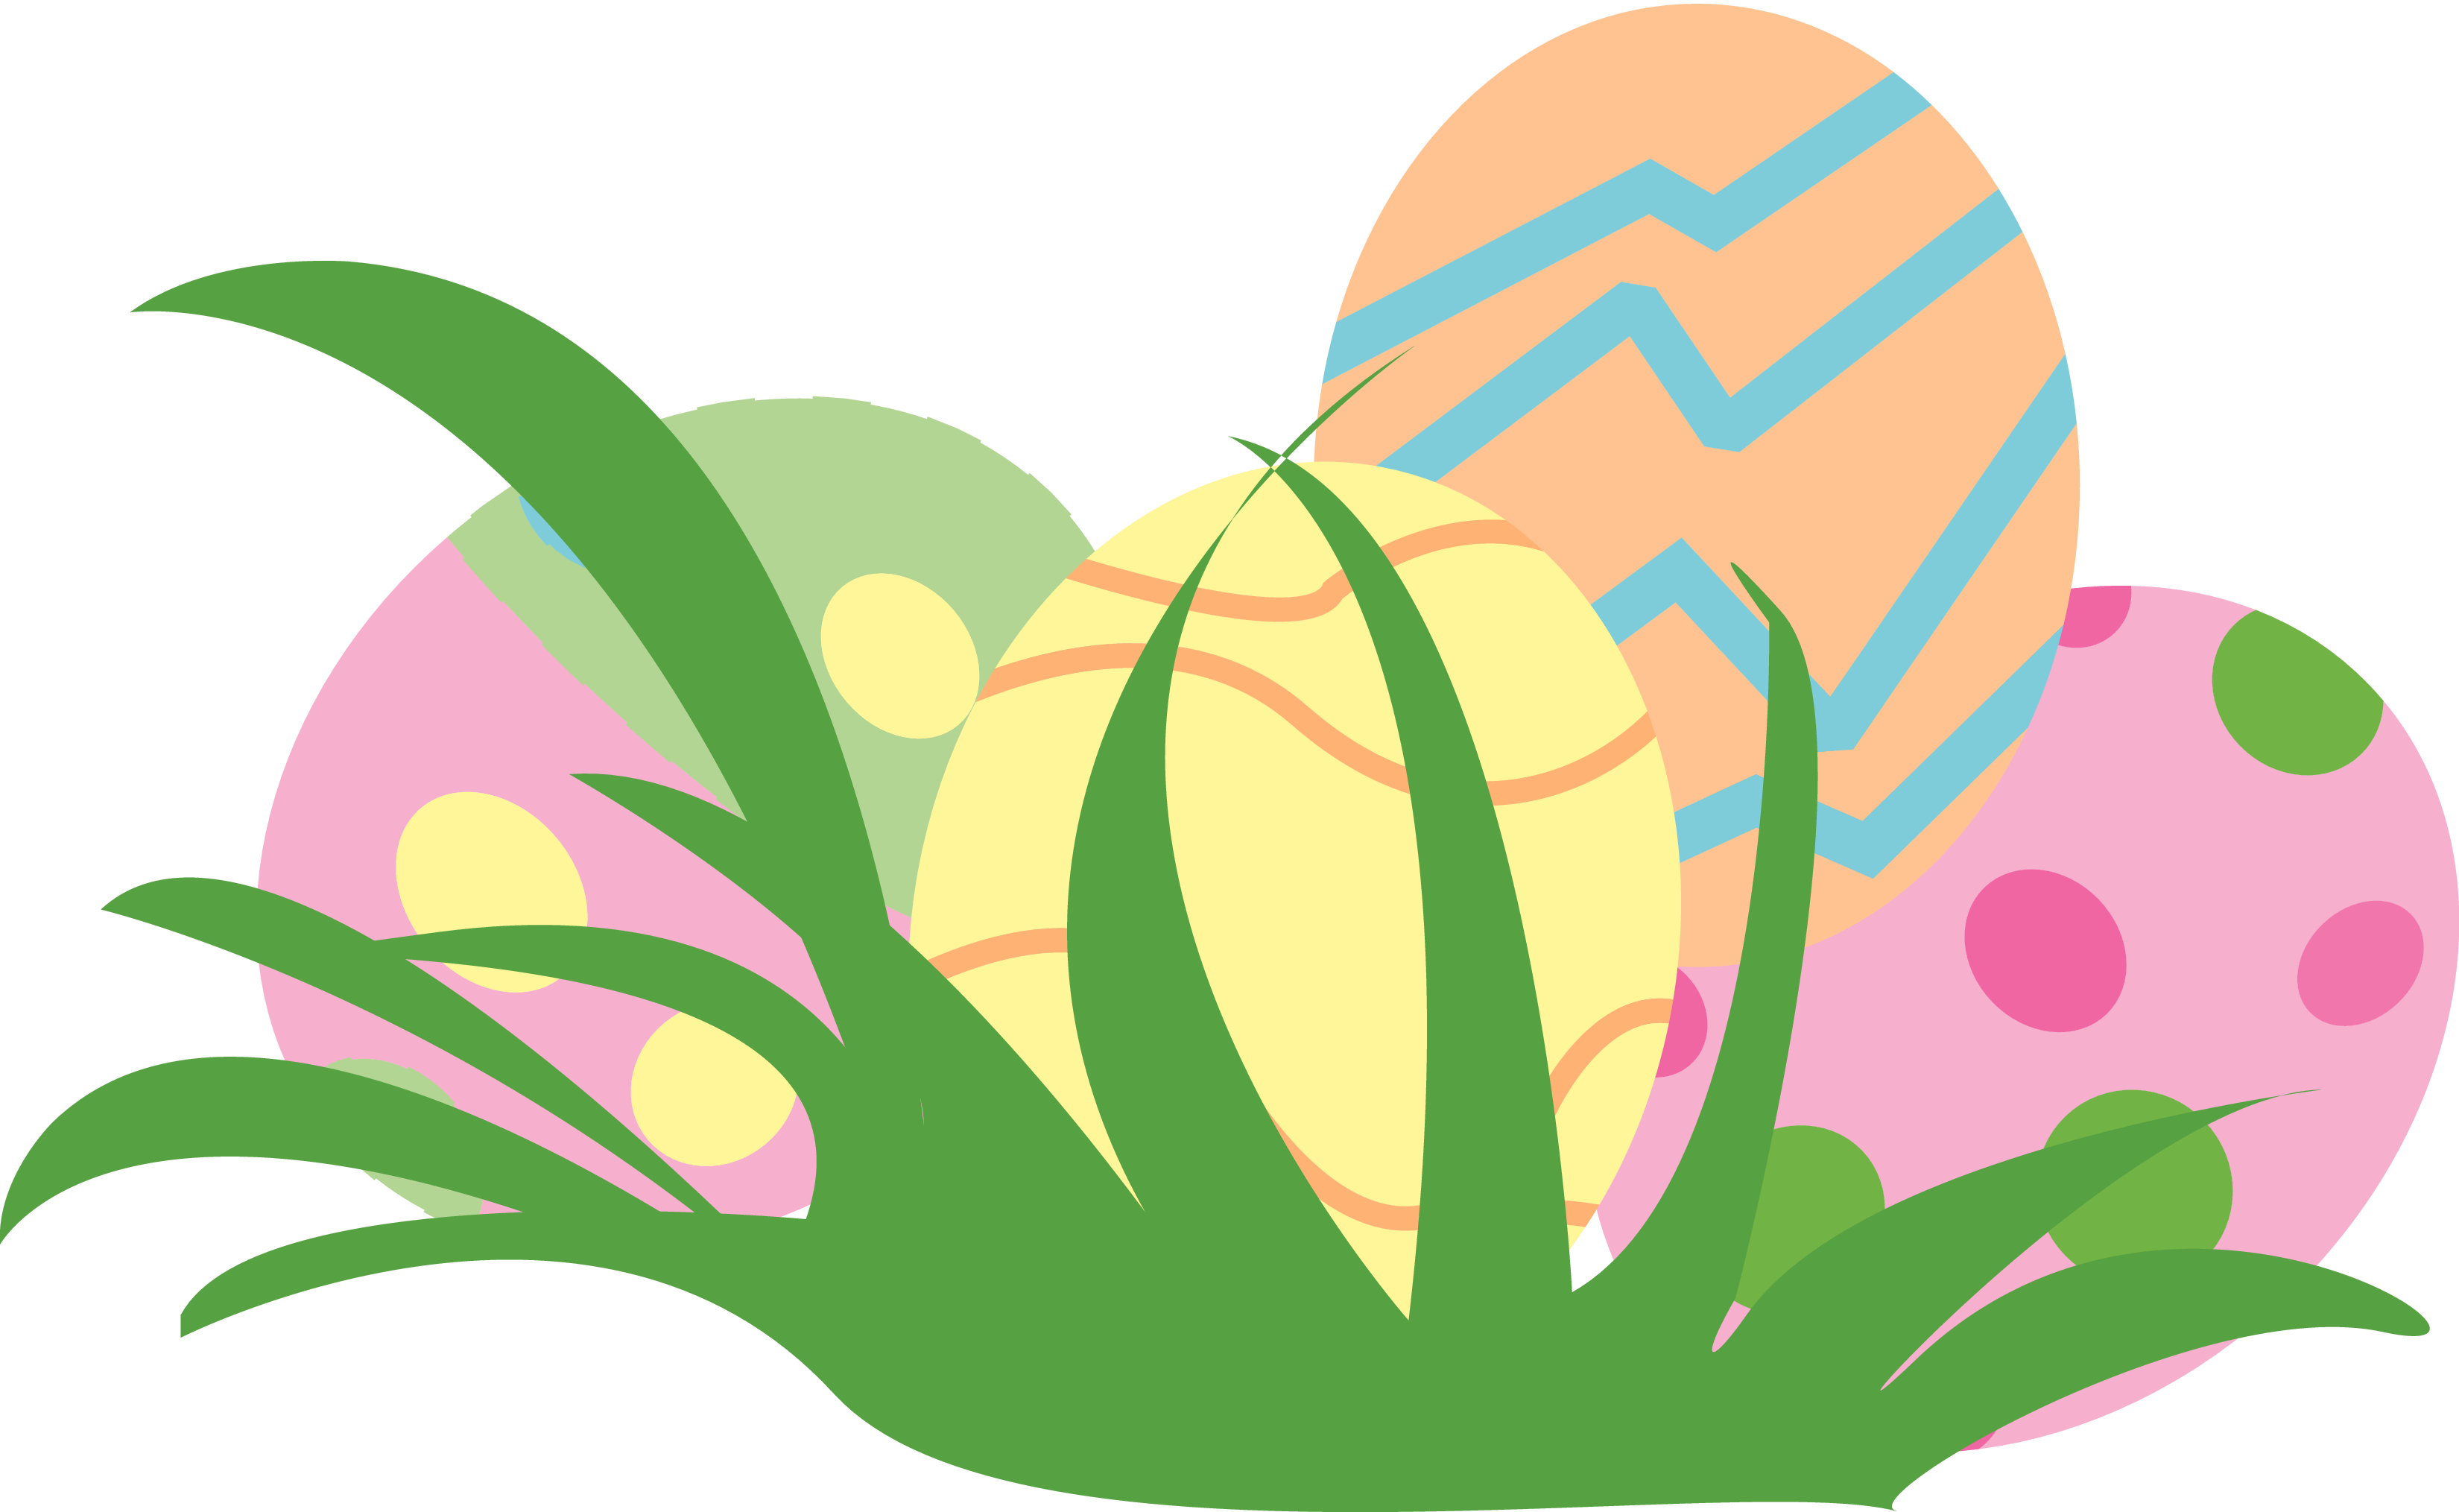 Pastel Easter Egg Clipart | Clipart Panda - Free Clipart Images ... svg free download